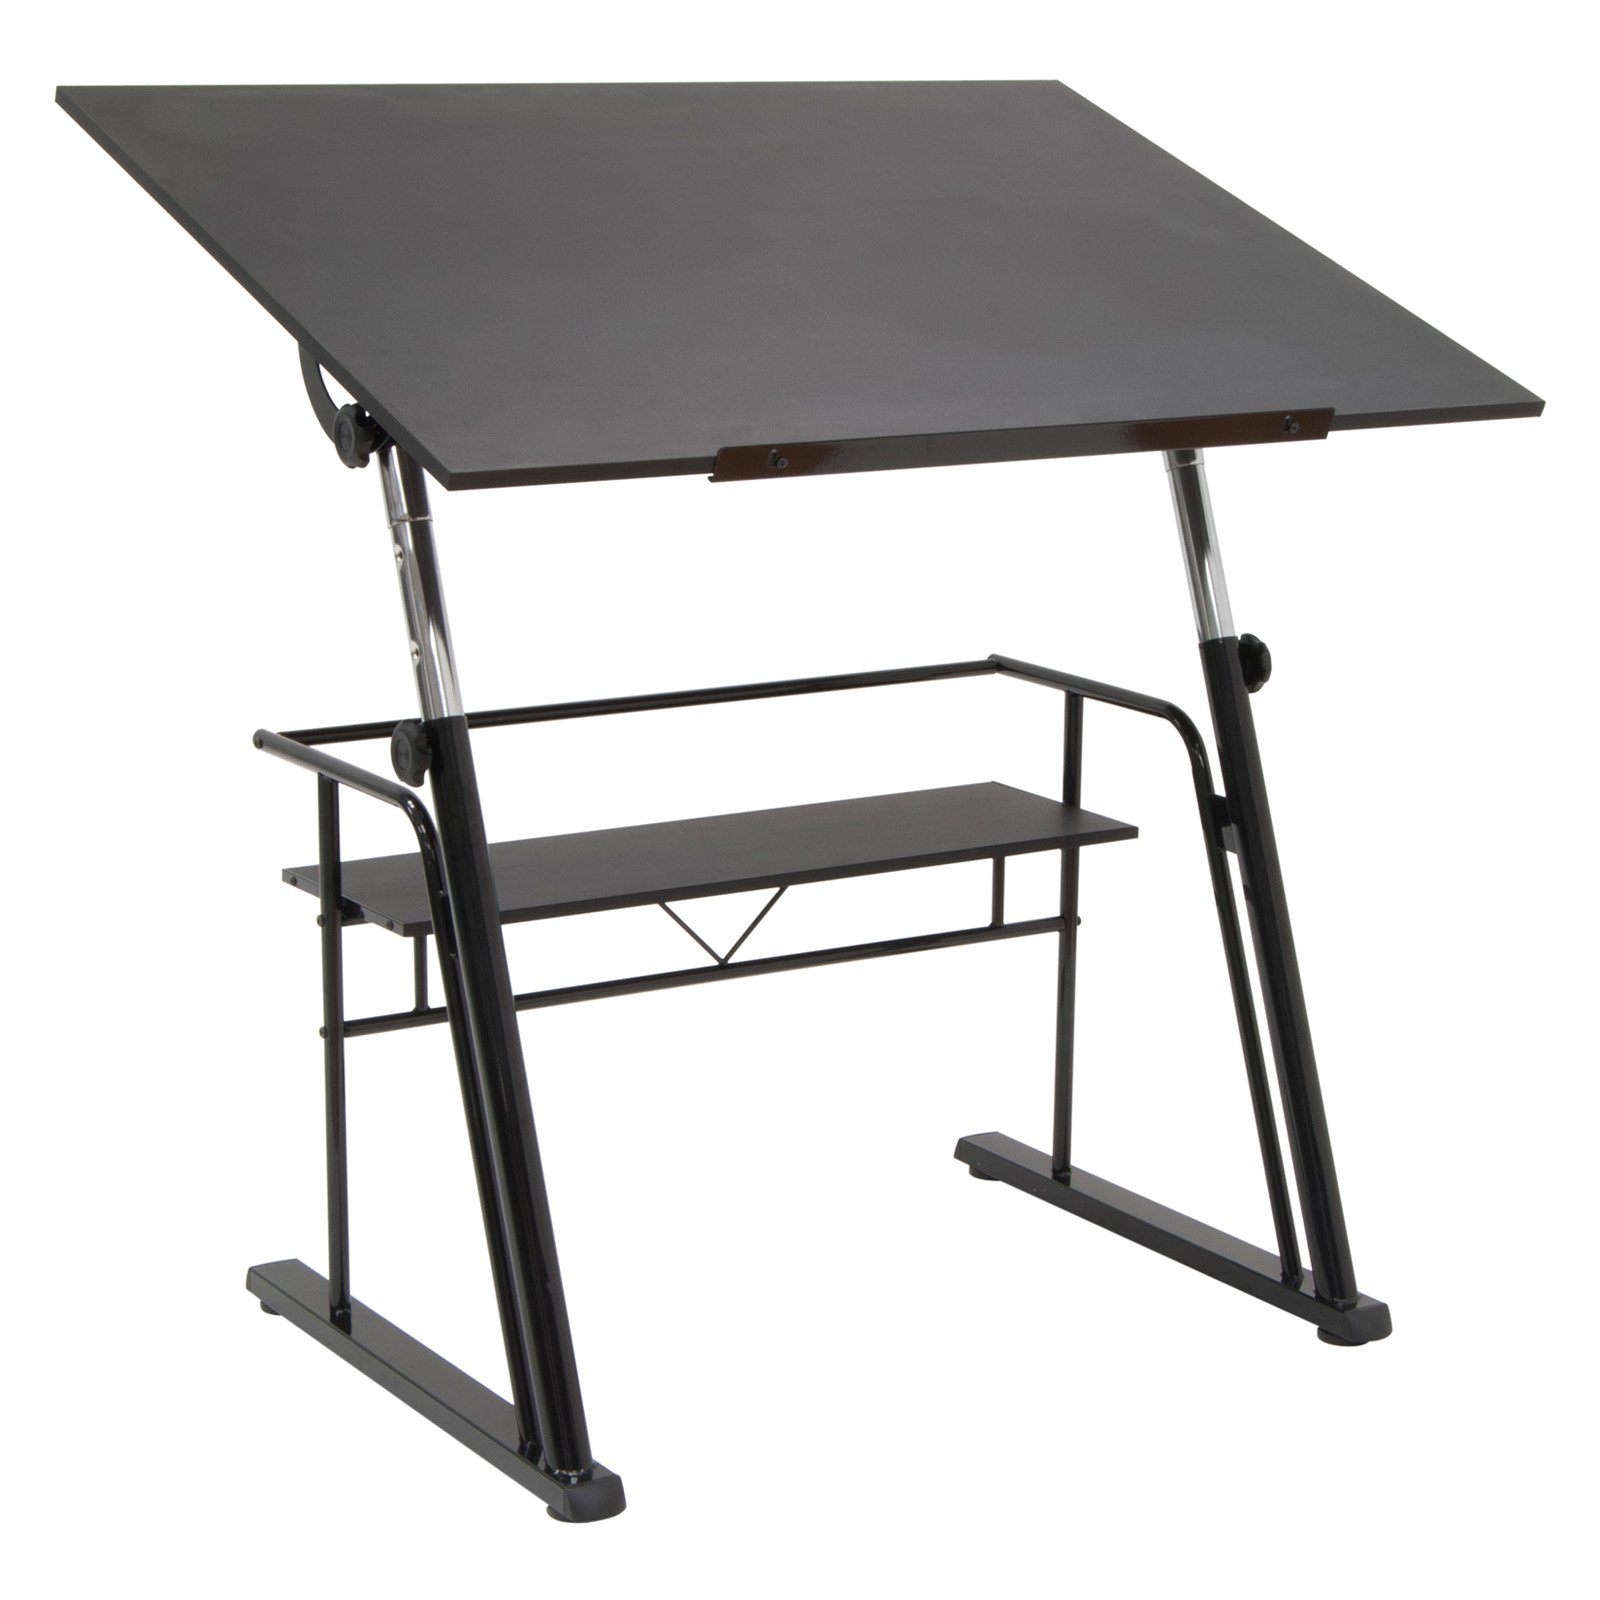 Studio Designs Zenith Tilting Top Table, Black